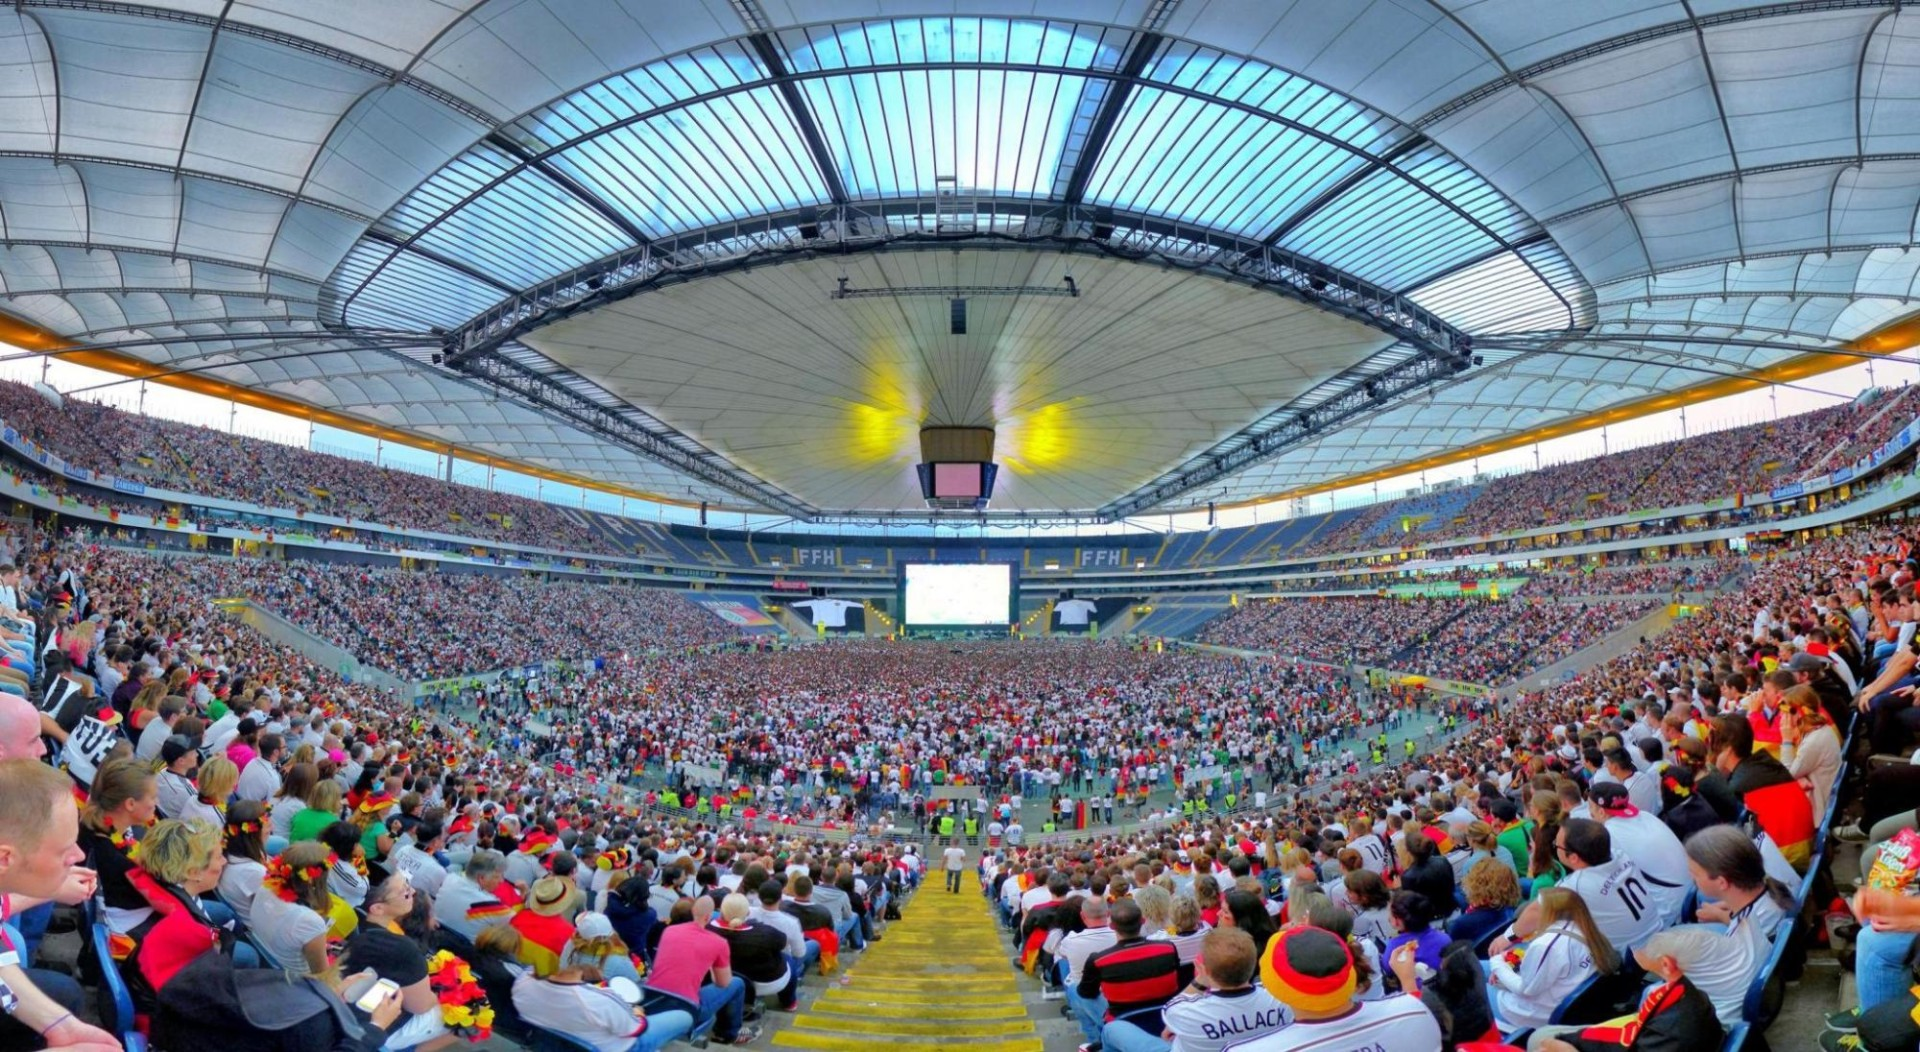 Public Viewing Commerzbank Arena Tickets